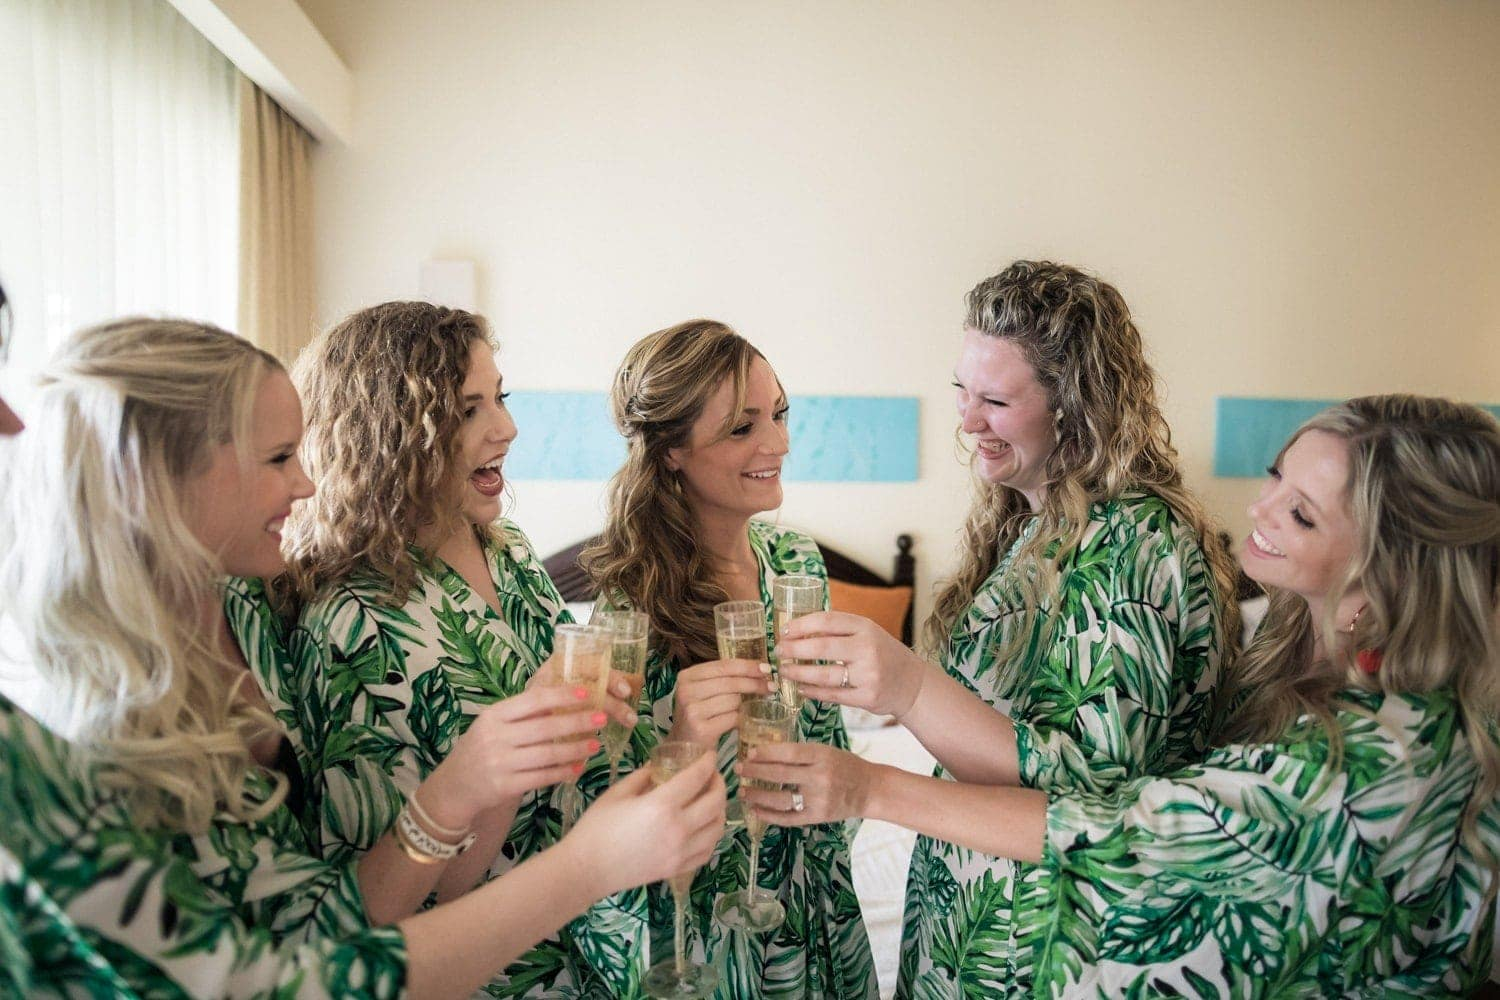 Bridesmaids and brides wearing wedding day robes while preparing for ceremony.